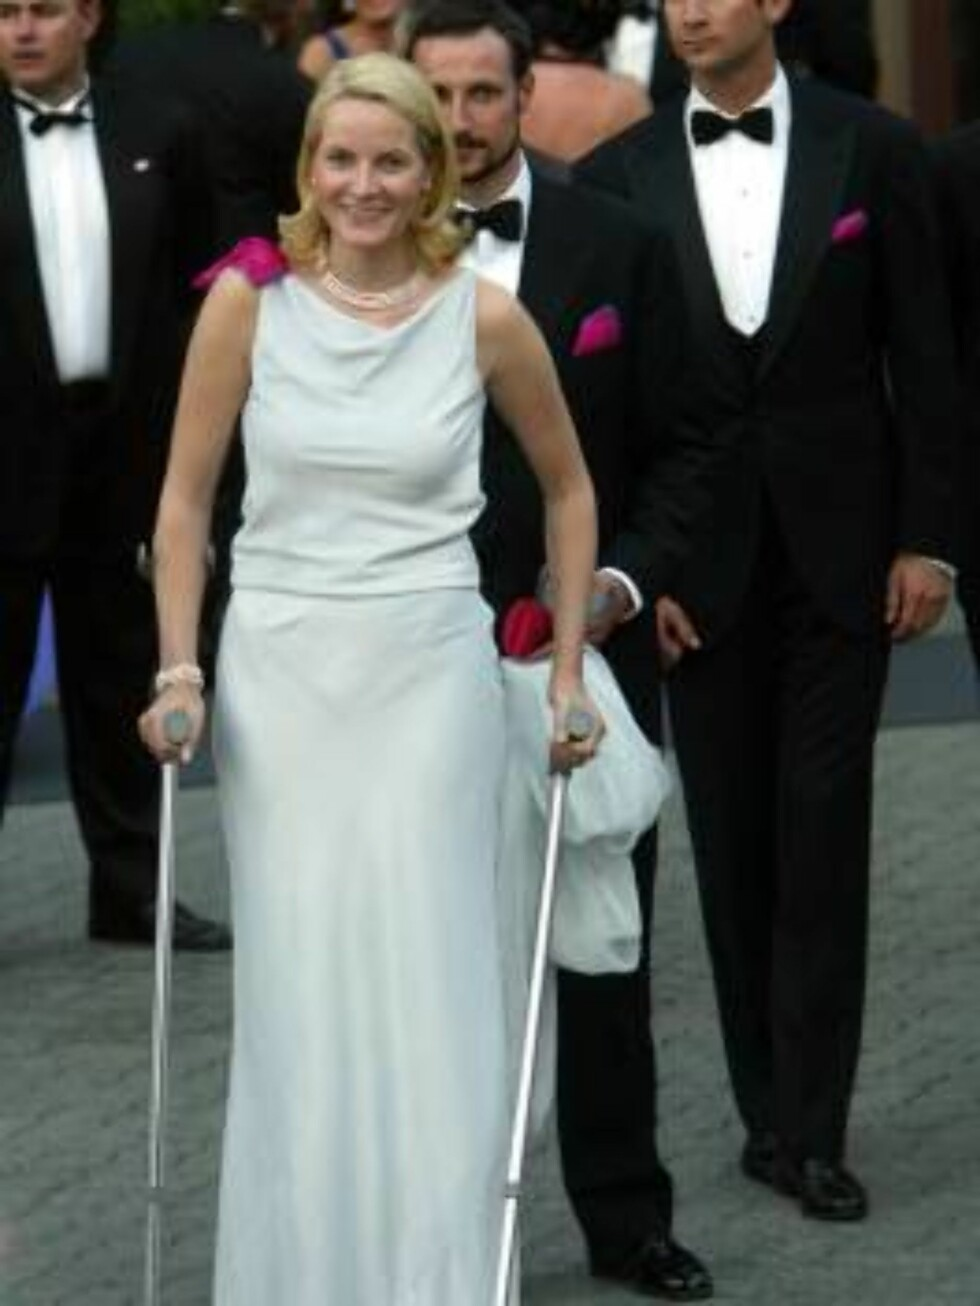 405744 34: Norwegian Princess Mette Marit leaves a reception hosted by the government on crutches  May 23, 2002 in Trondheim, Norway. The couple is here to attend the wedding of Norwegian Princess Martha Louise and Ari Behn  May 24. (Photo by Michel Porro Foto: All Over Press